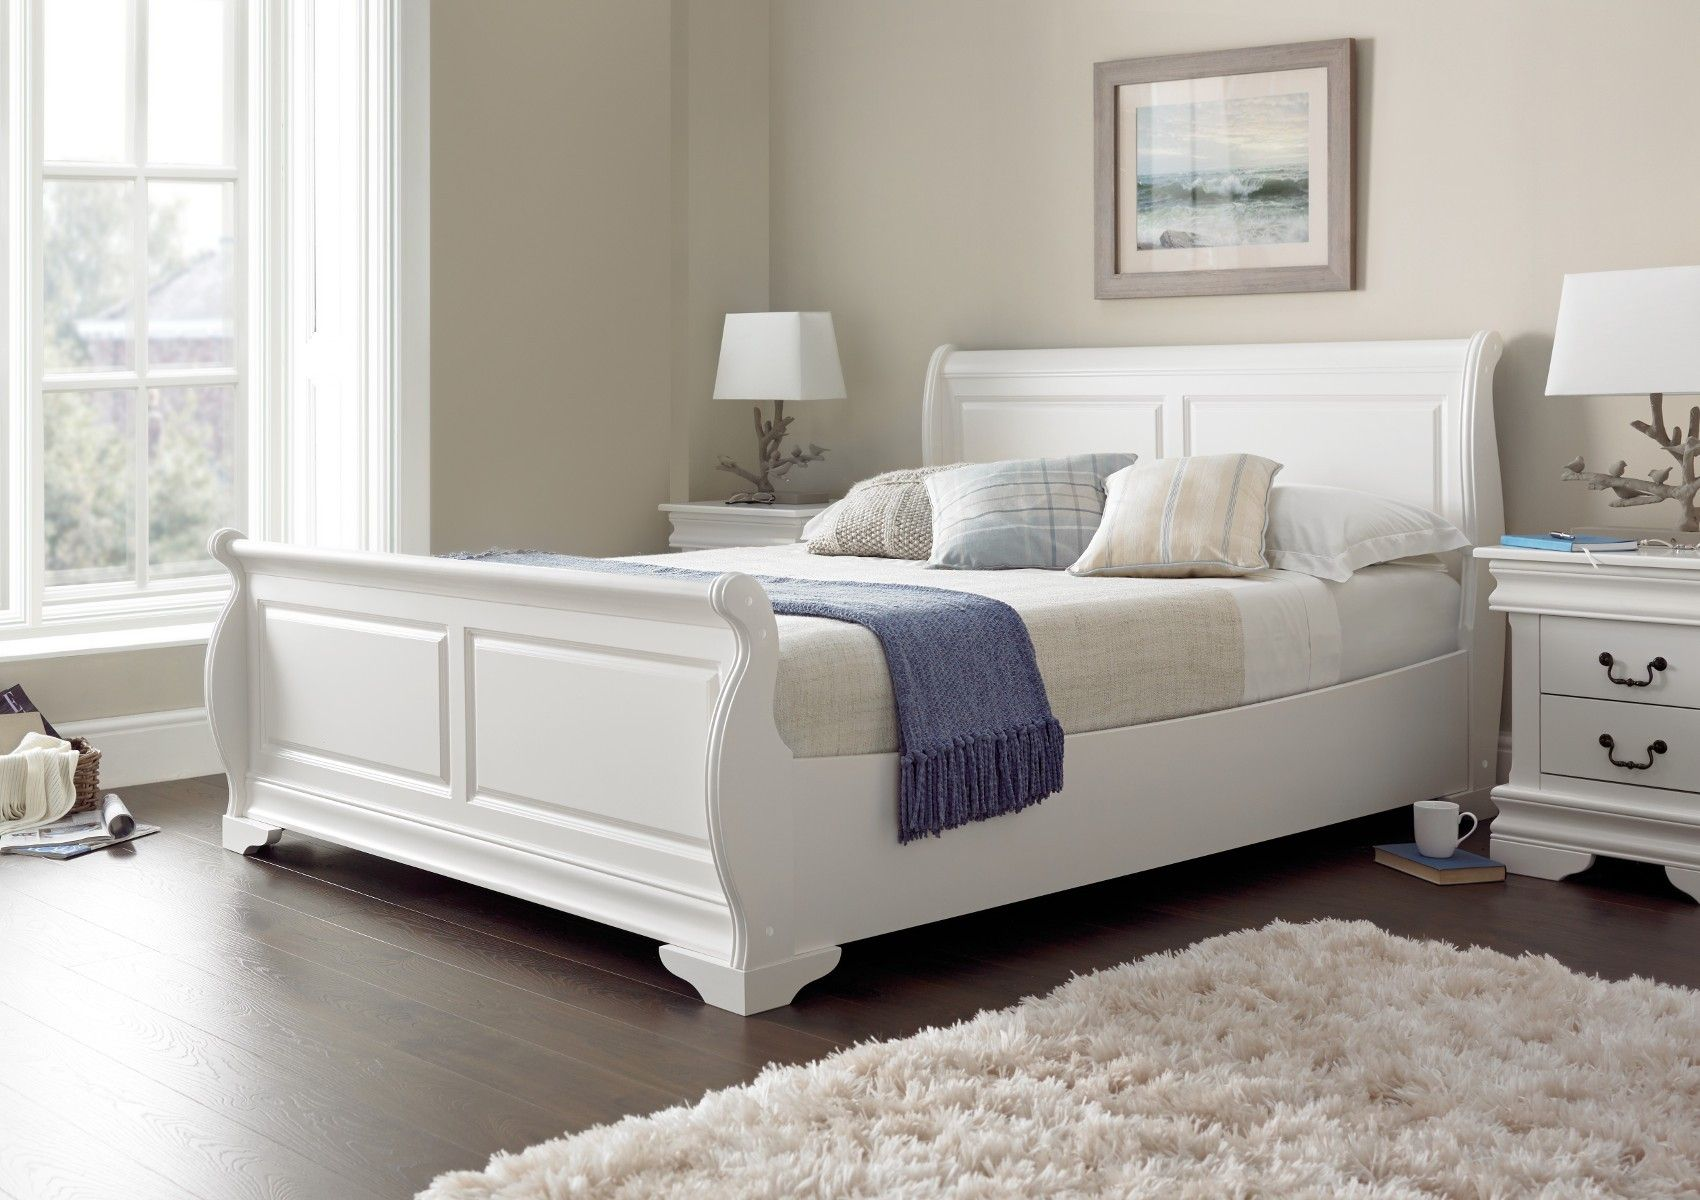 Louie  Polar White  NEW  Our home  White wooden bed